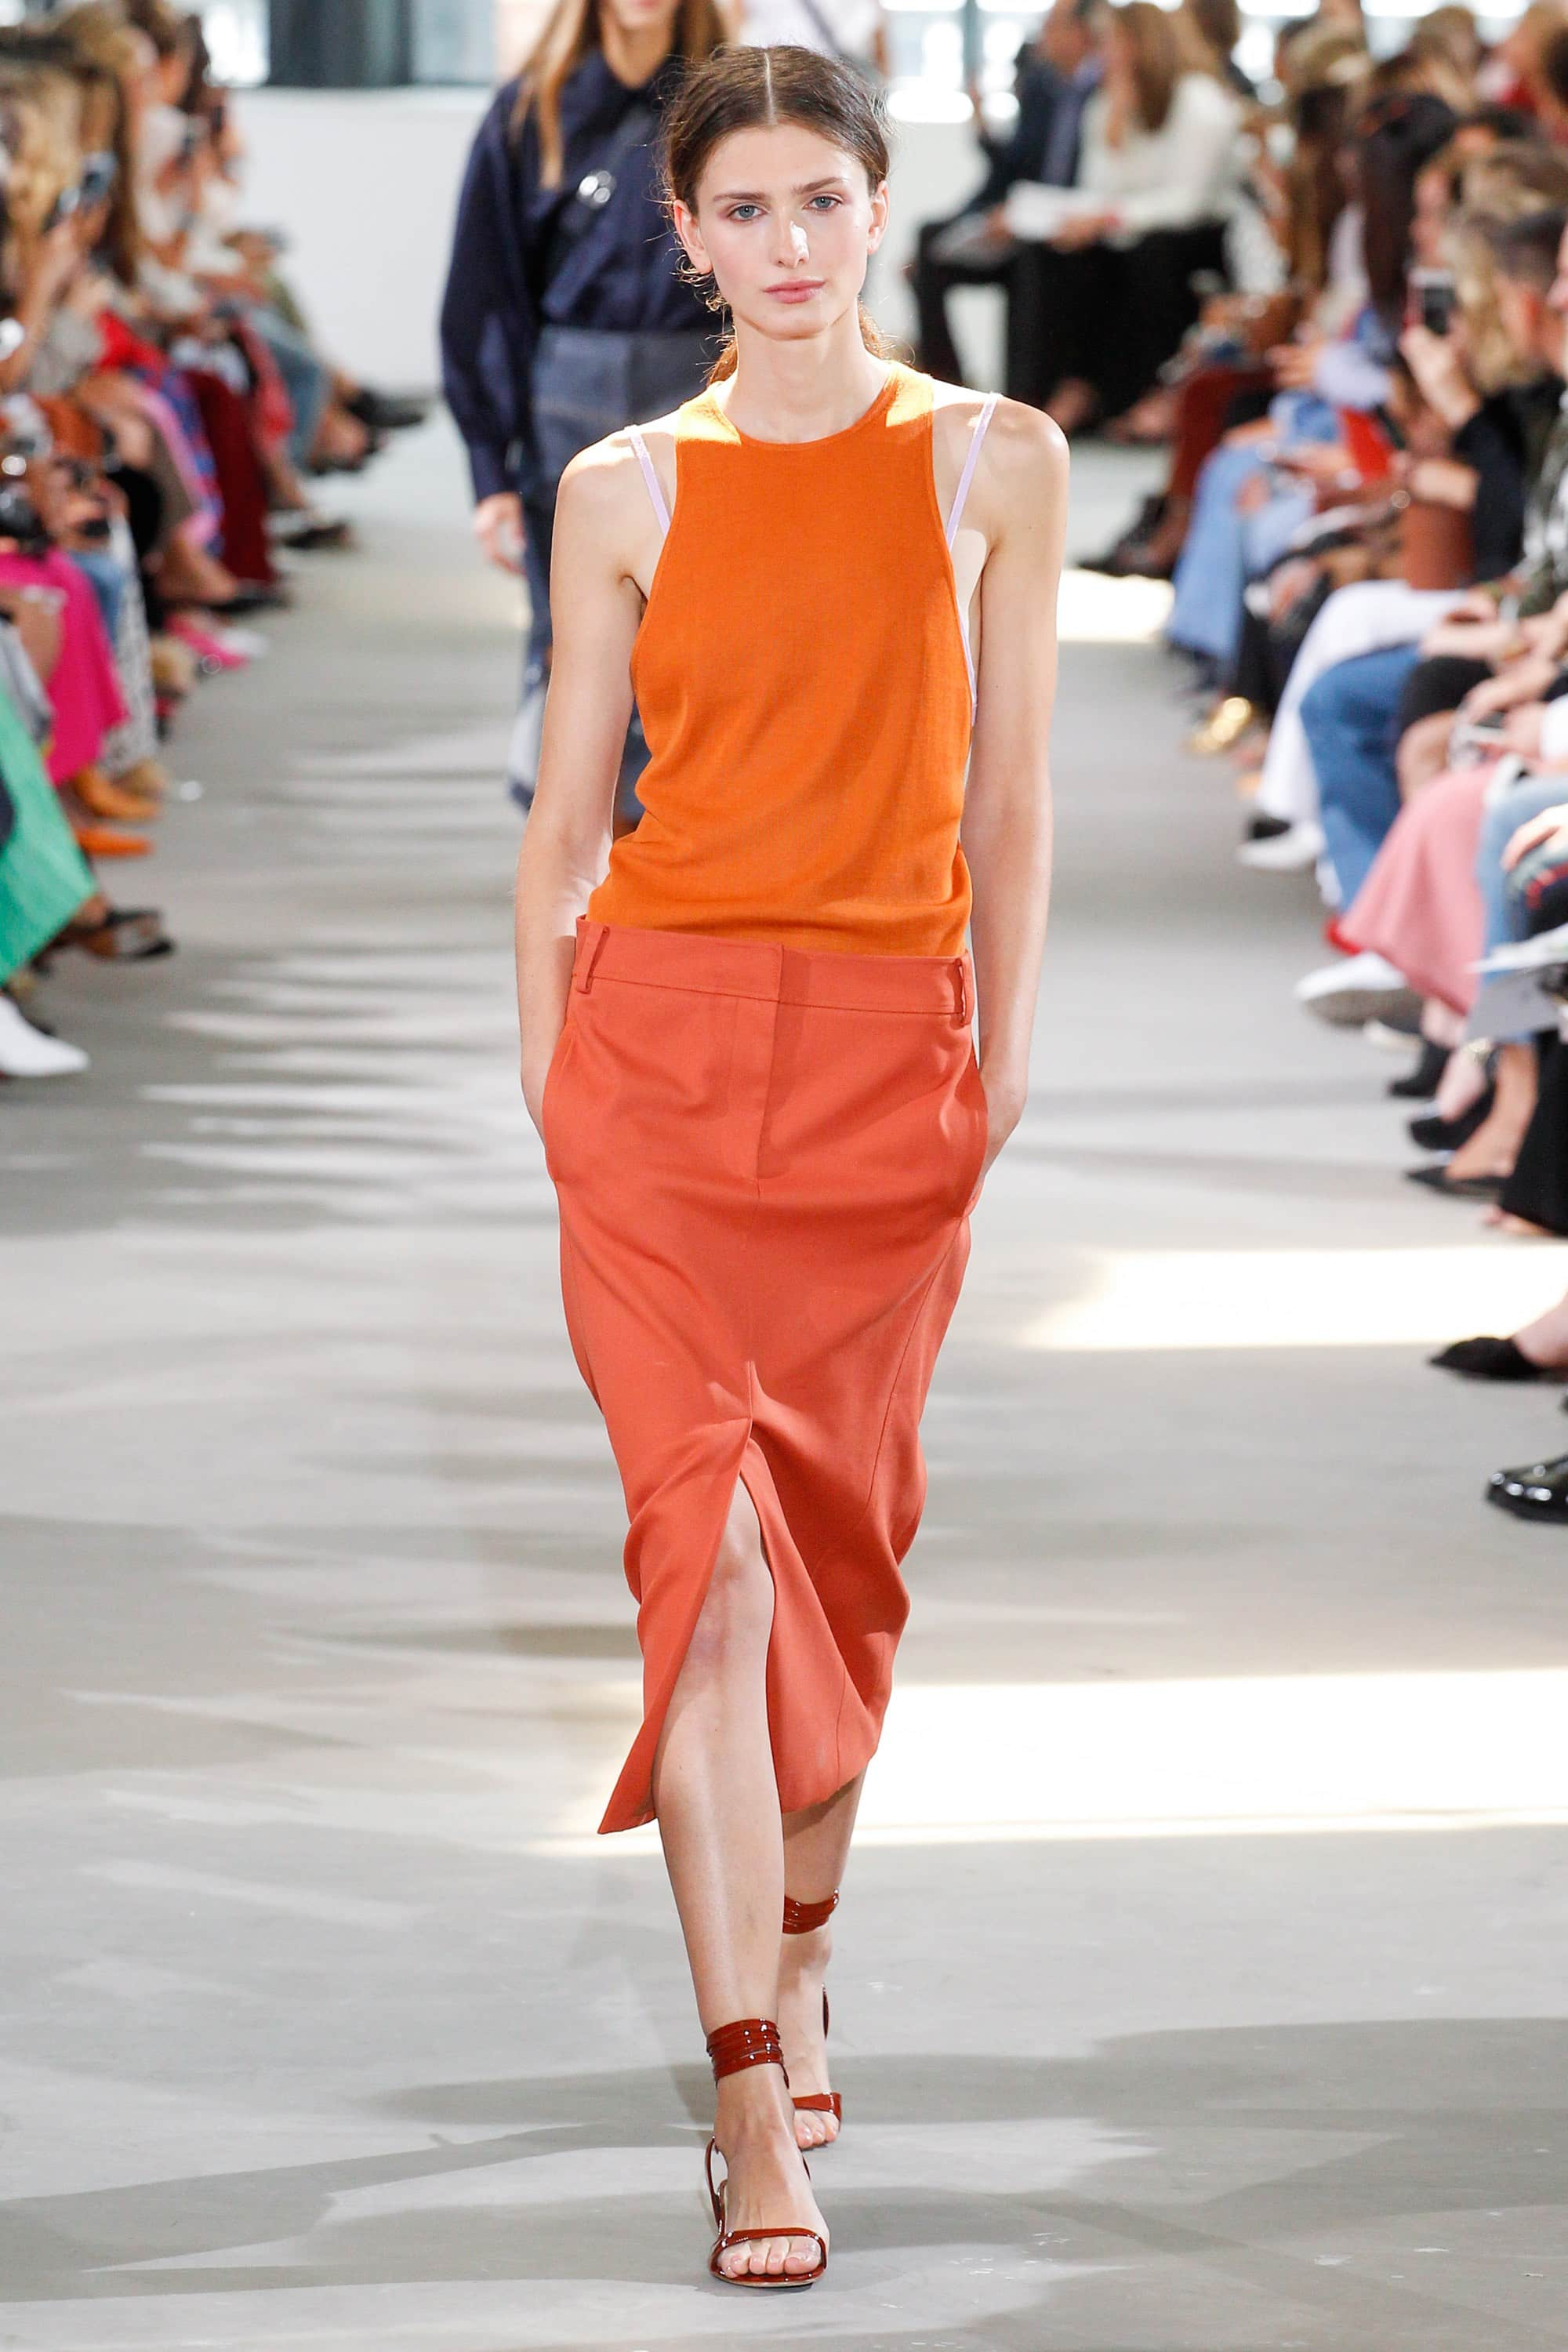 Outfit, Fashion, Fashion Show, Catwalk, Model, Model Life, Runway, Dress, Look, OOTD, Fashion Week, Trend Report, Trends, Trendy, SS18, Spring Summer 2018, NYFW, New York, New York Fashion Week, Runway Walk, Tibi, Orange, Pencil Skir